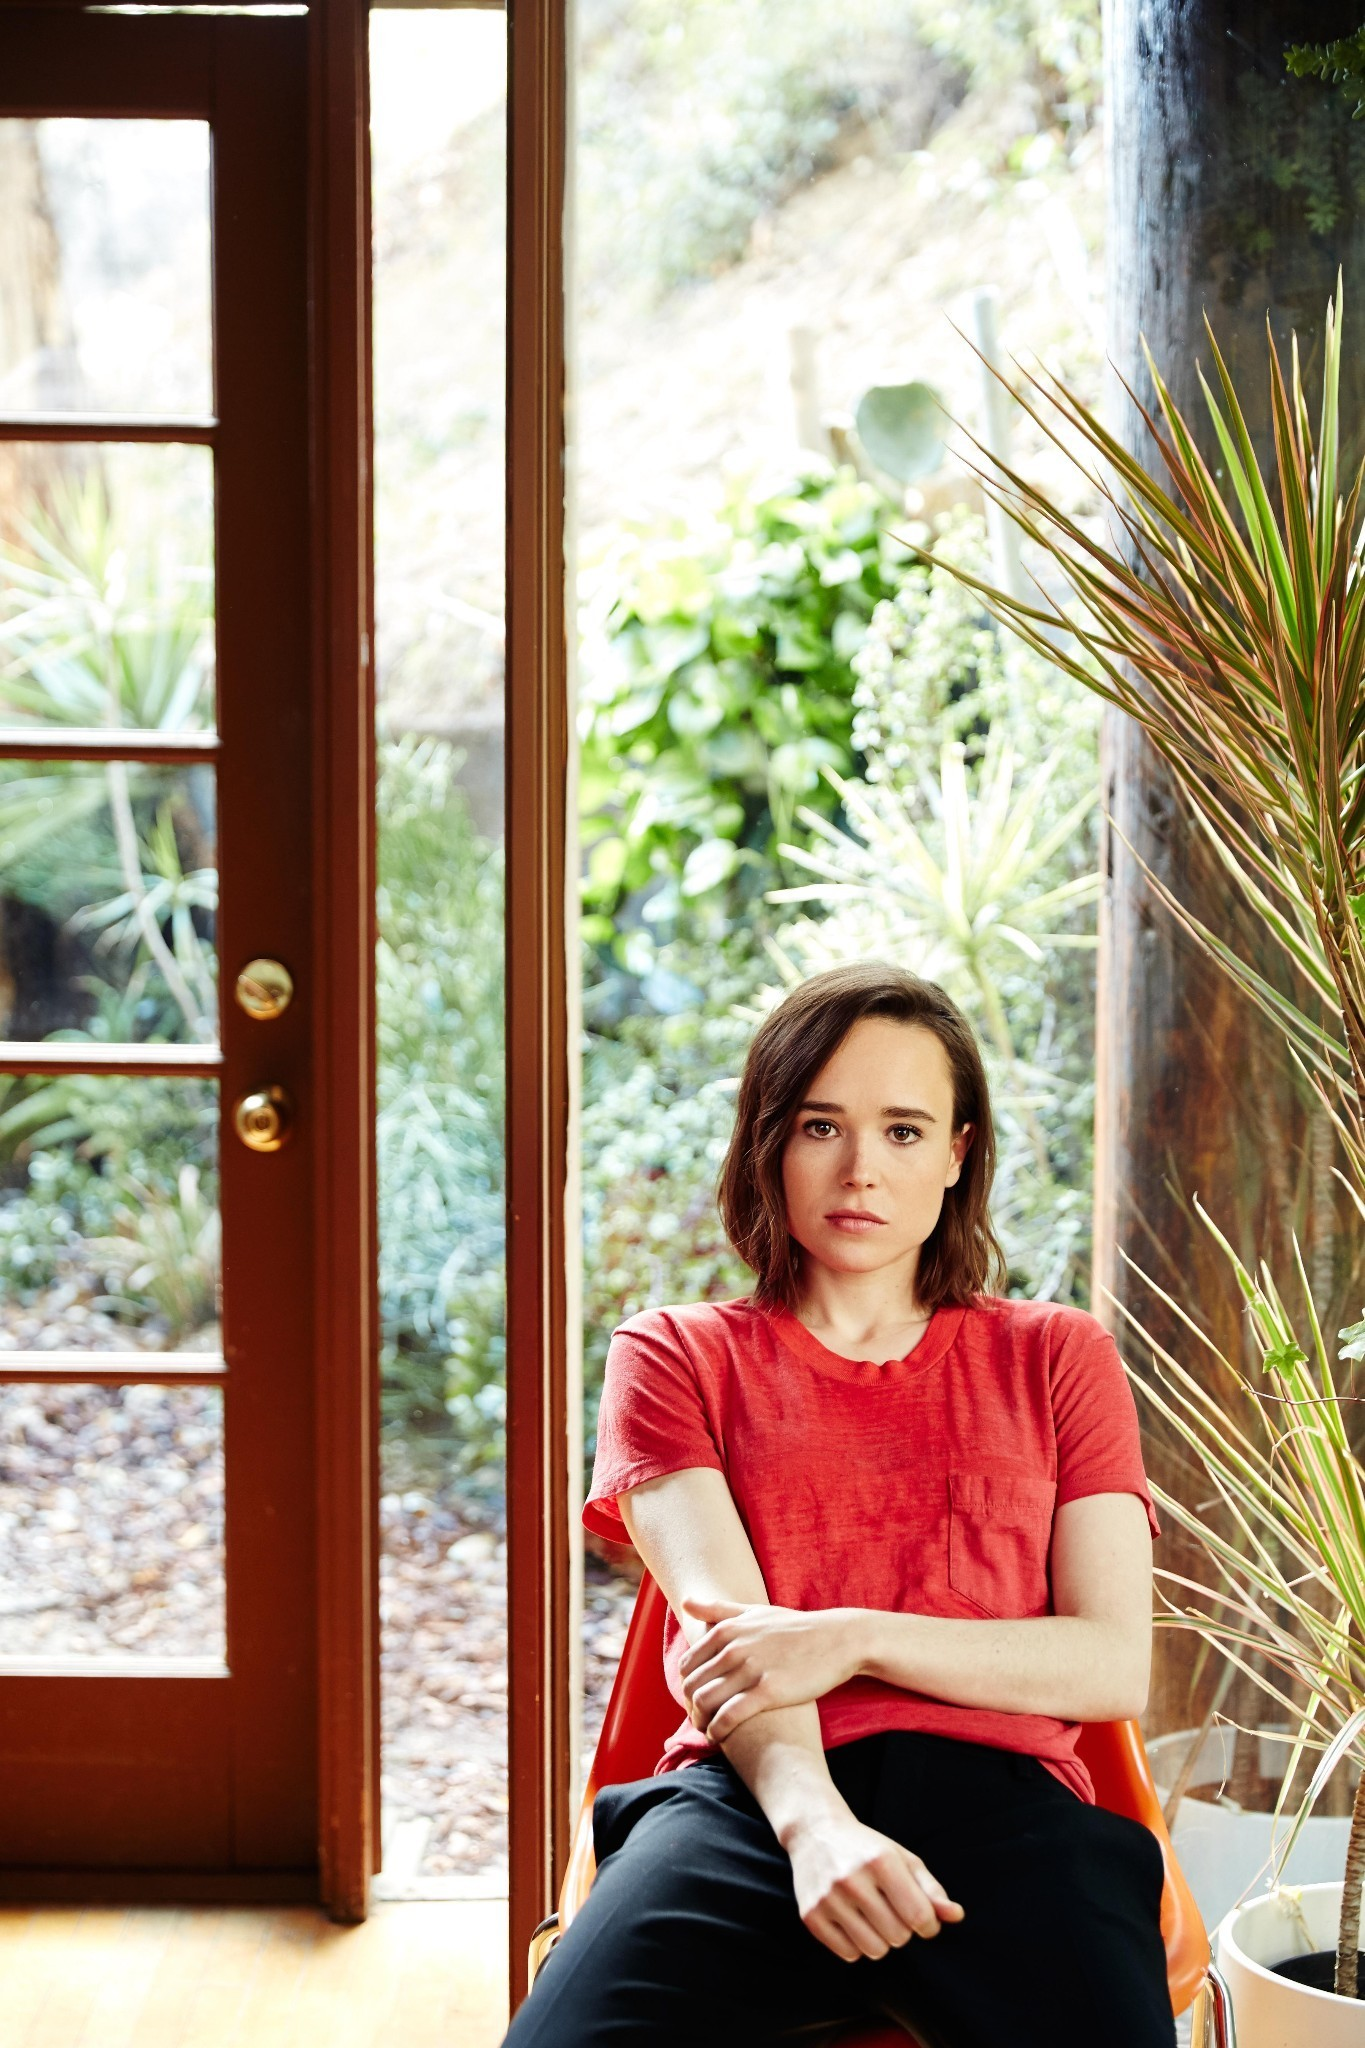 Ellen Page: 'Being out became more important than any movie'